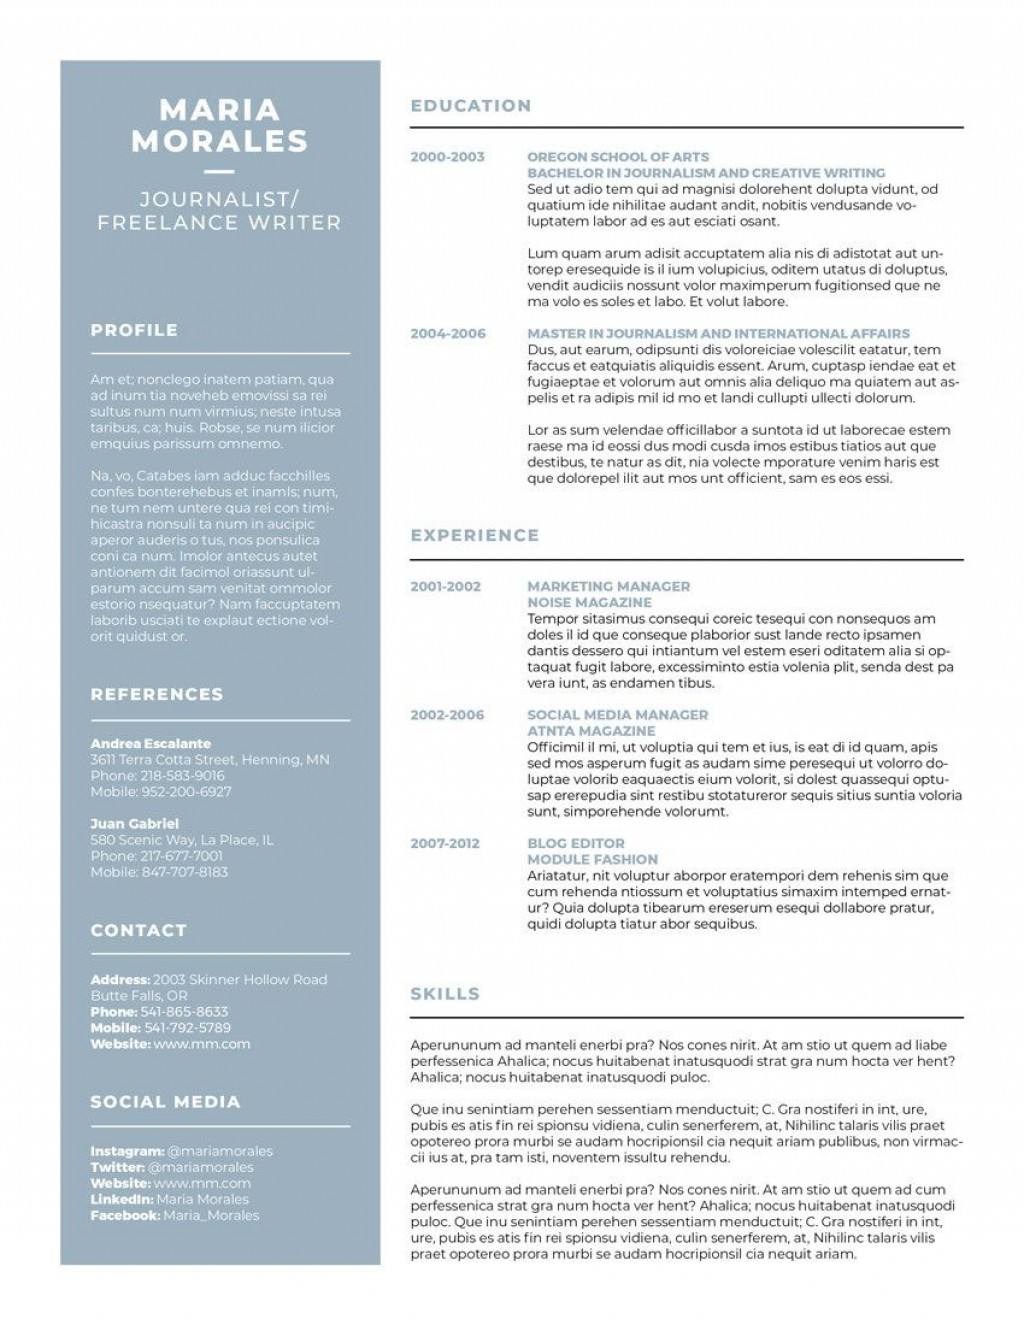 008 Awful Make A Resume Template Free High Resolution  Create Your Own How To WriteLarge